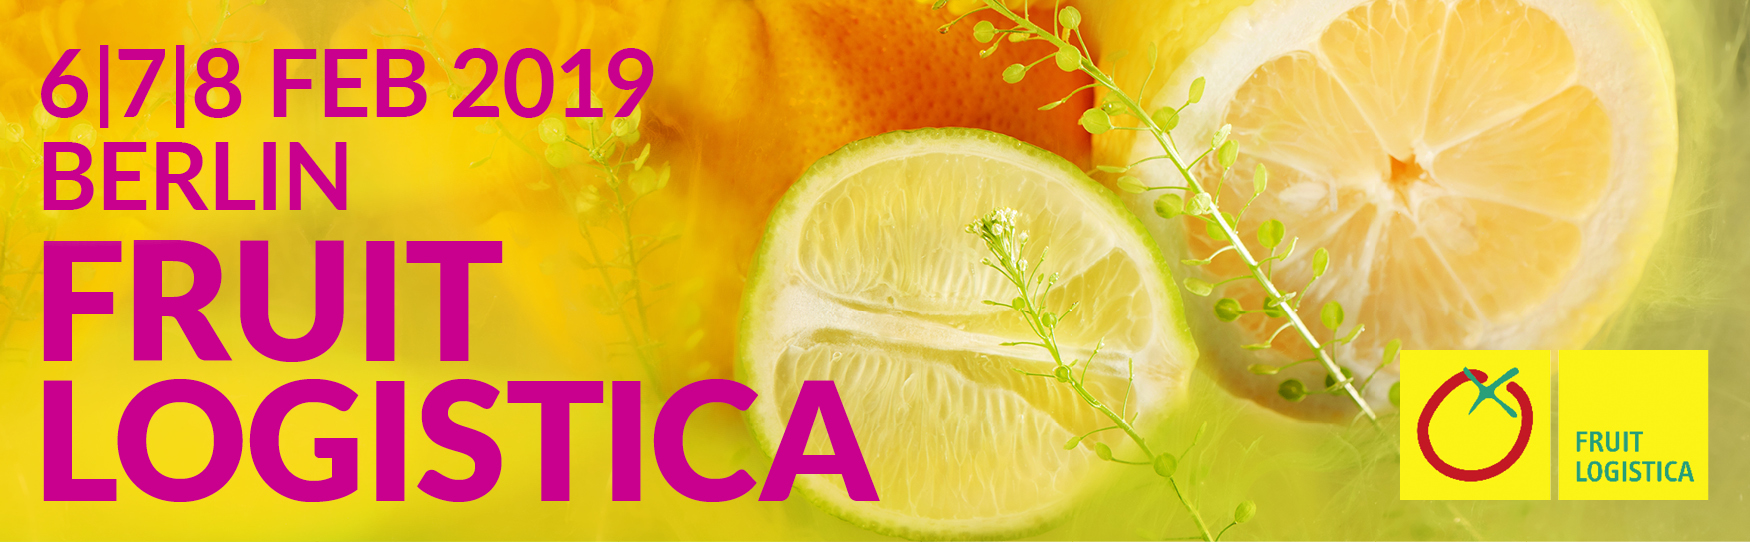 Fruit Logistica 2019